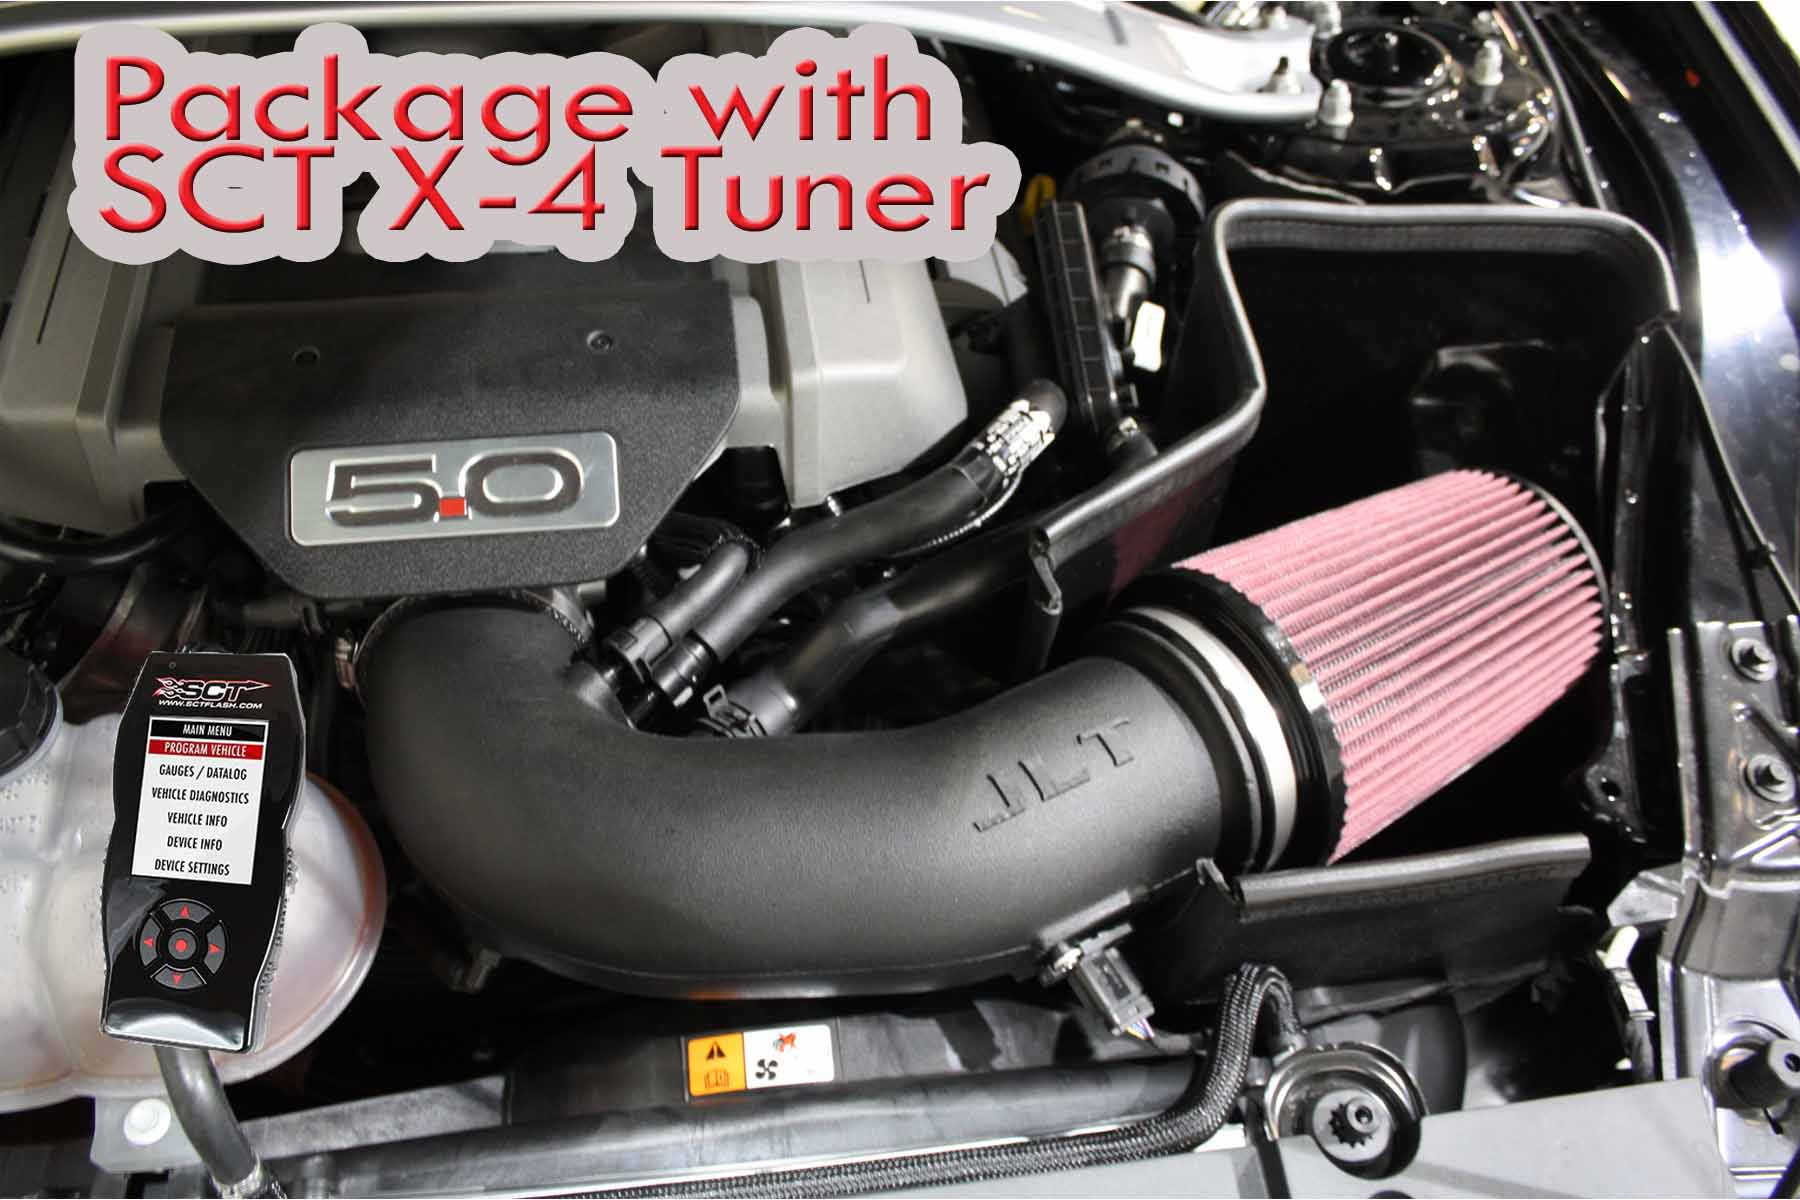 JLT Performance Package: Jlt Cold Air Intake / SCT X4 Tuner (2015-17 Mustang GT), White Dry, Manual, 93 Octane and 91 Octane